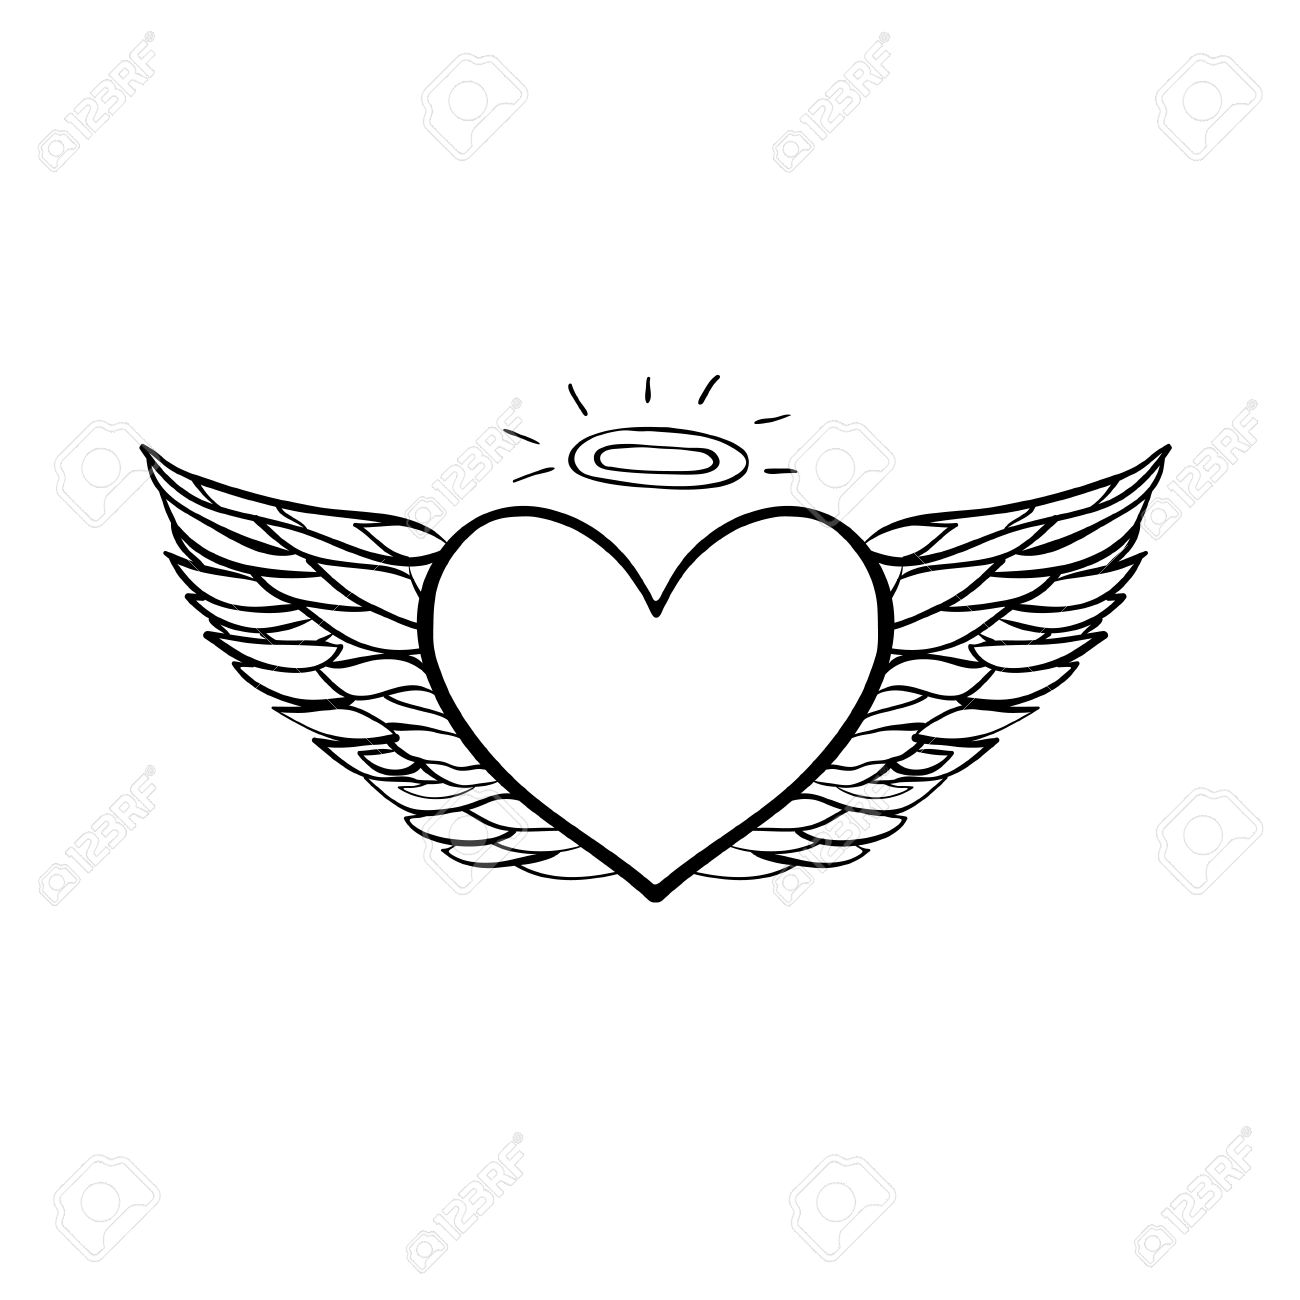 1300x1300 Vector Hand Drawn Flying Angel Heart. Black Sketch On White